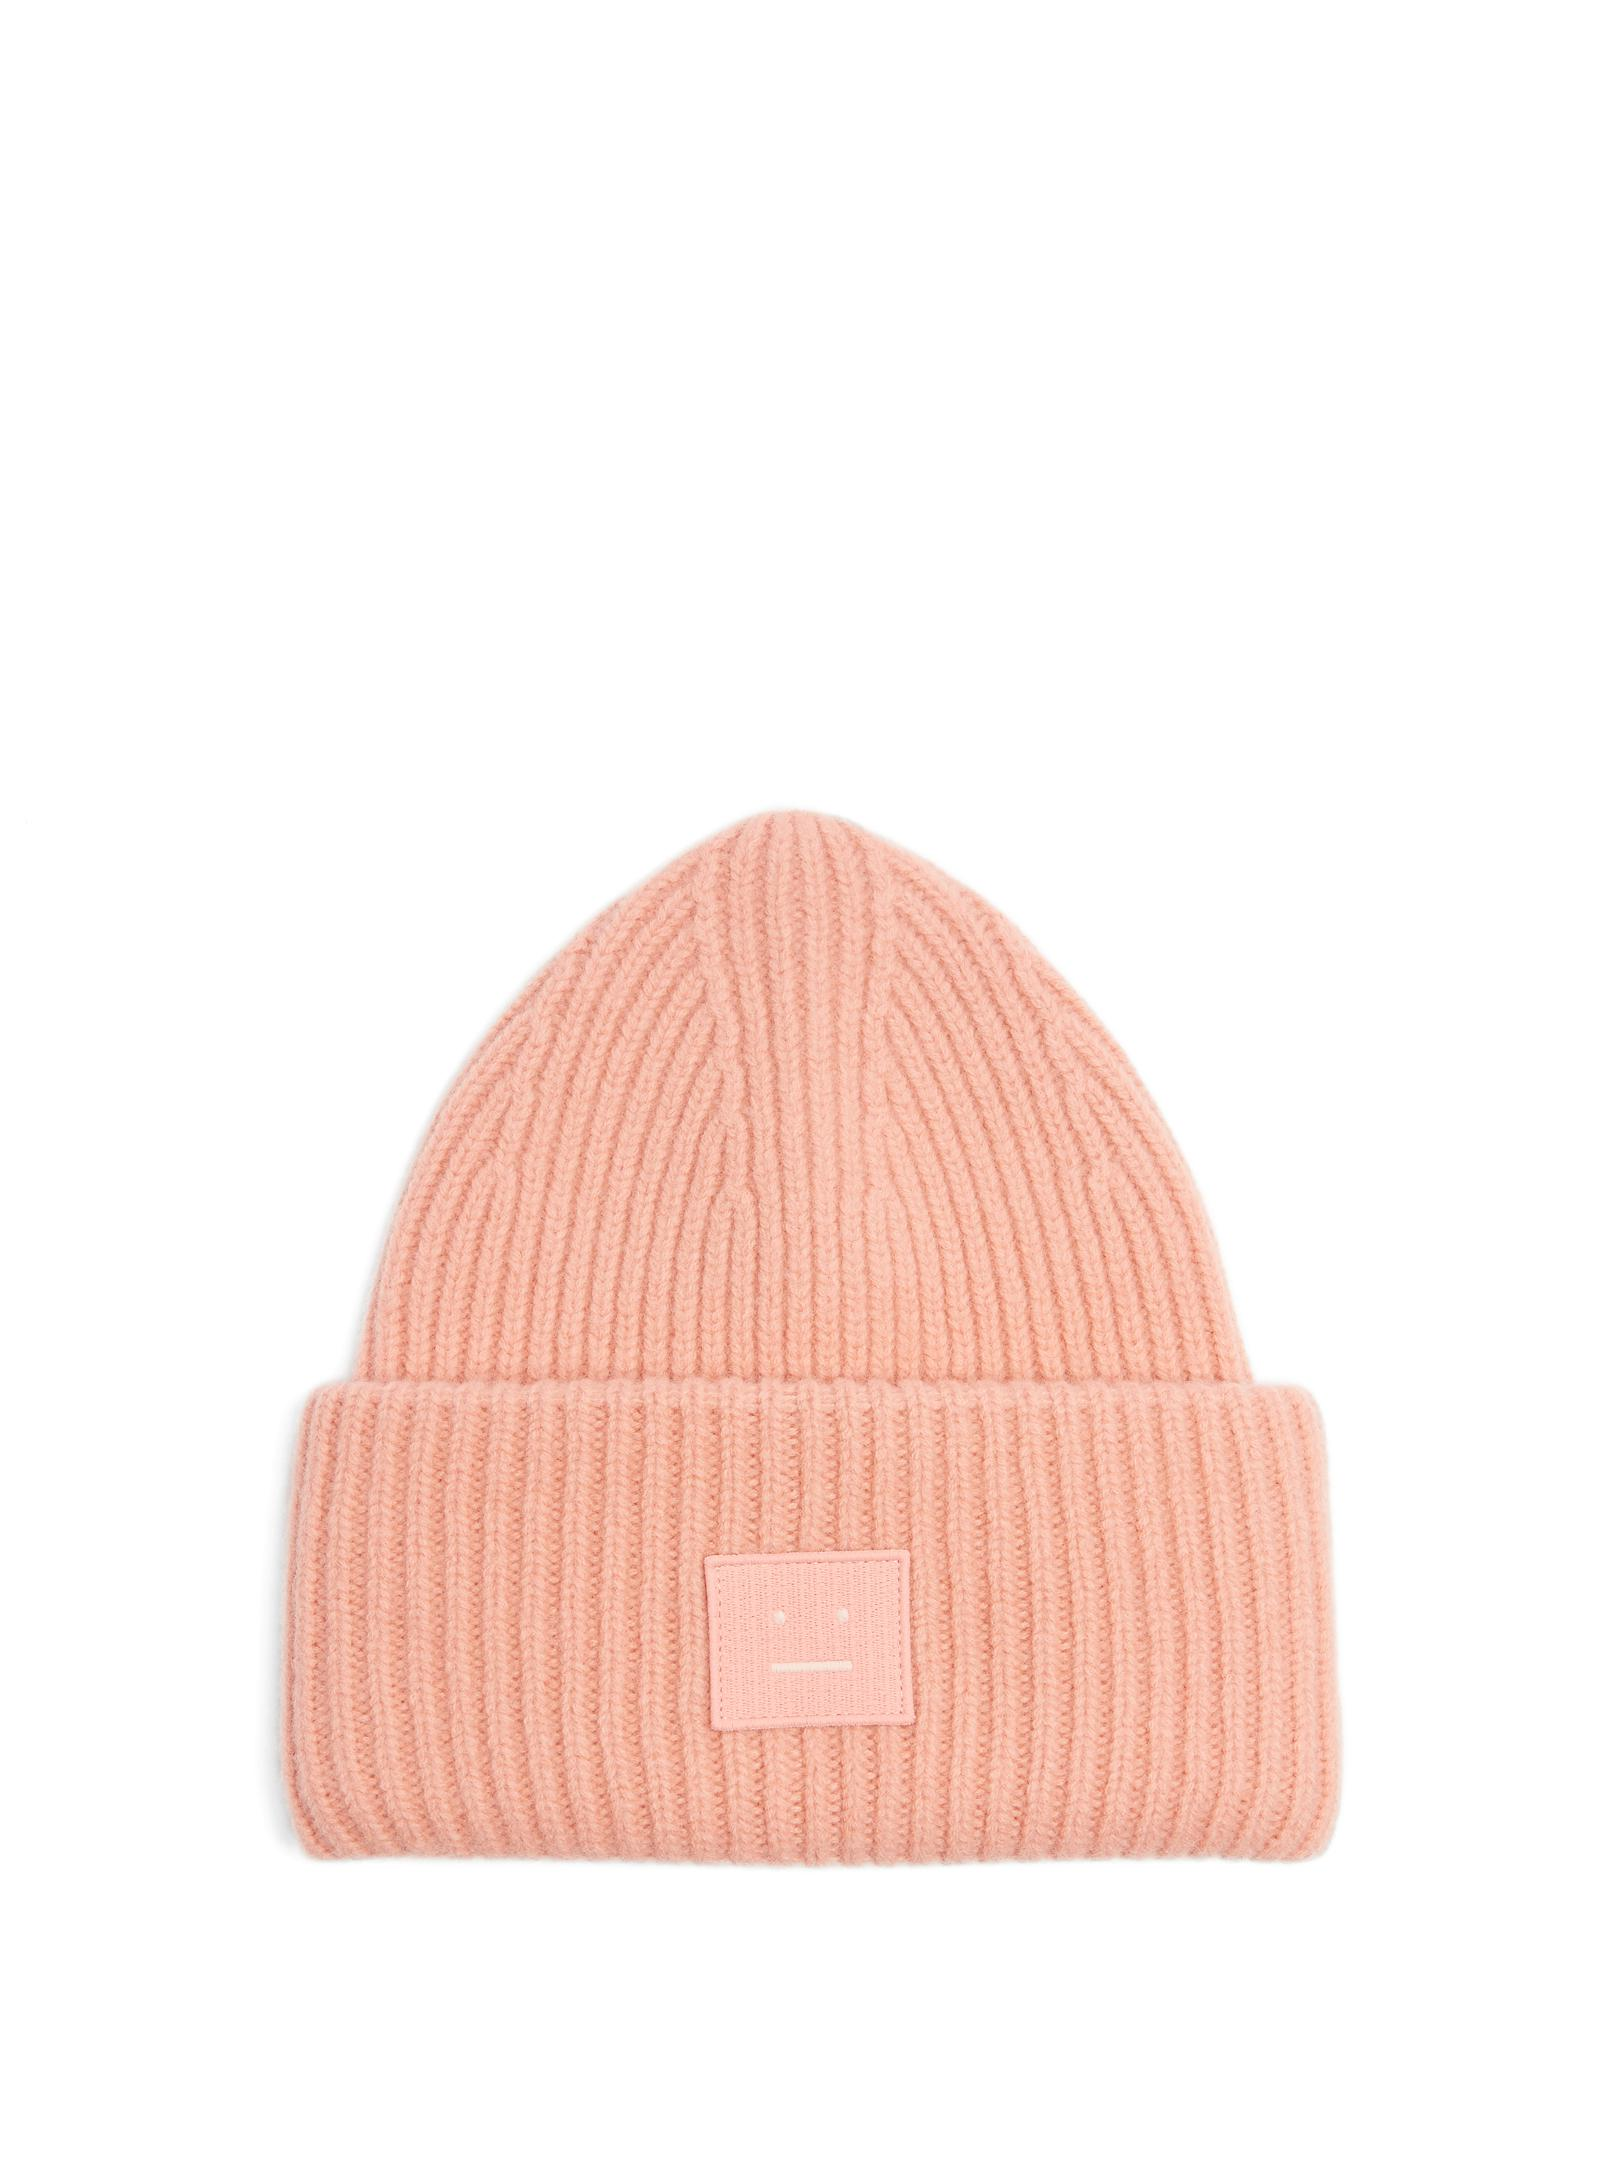 Lyst - Acne Studios Pansy Wool-blend Beanie Hat in Pink 5f8c3cb4ace